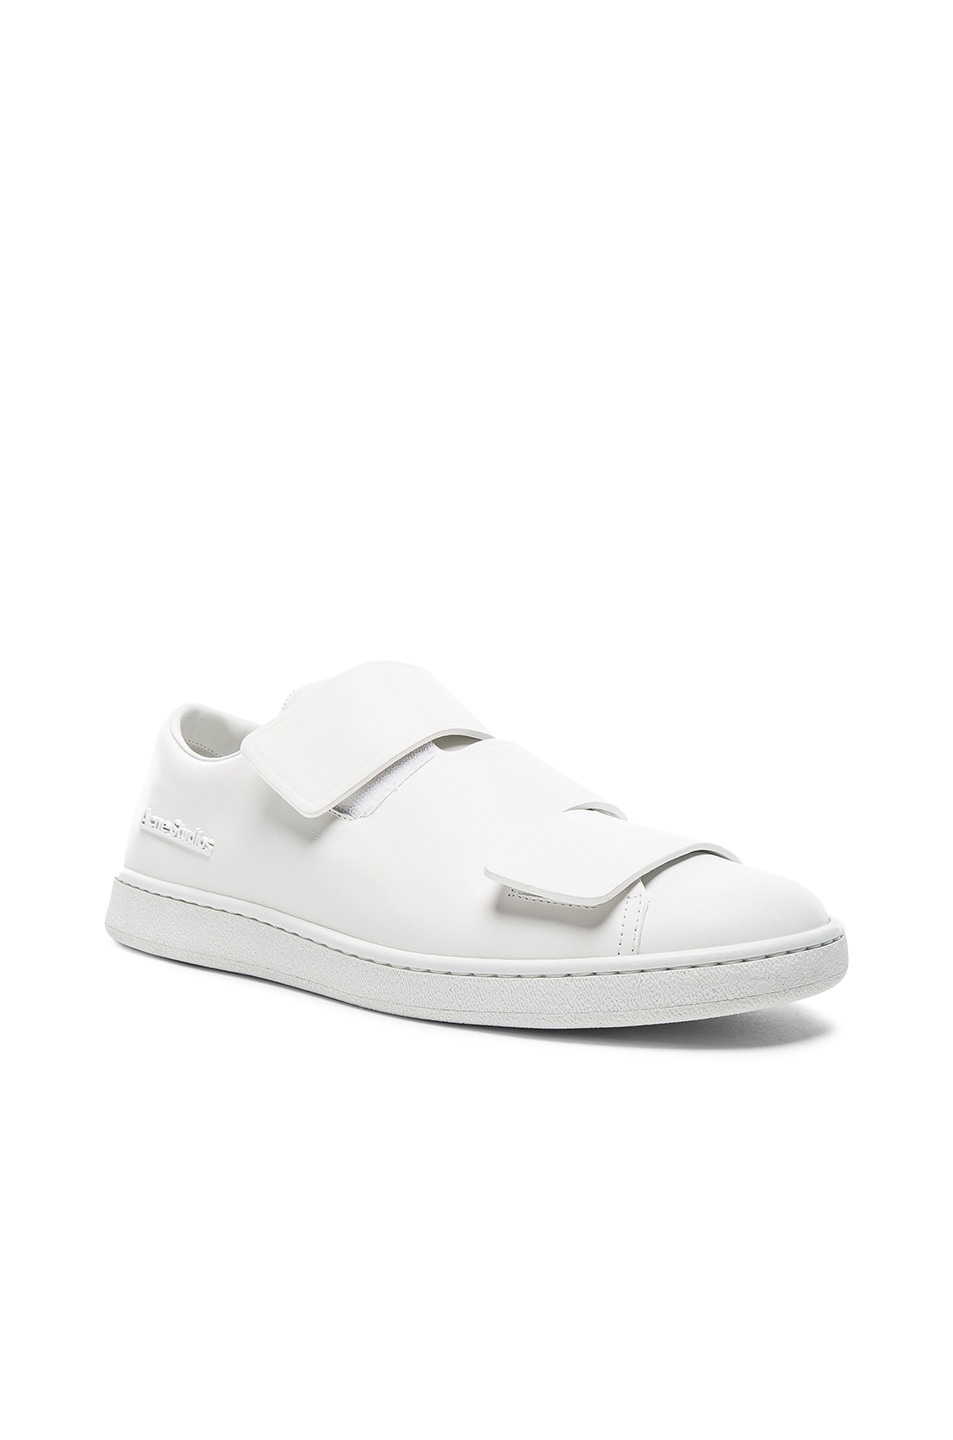 495981edf4a28 Image 1 of Acne Studios Leather Triple Lo Sneakers in White